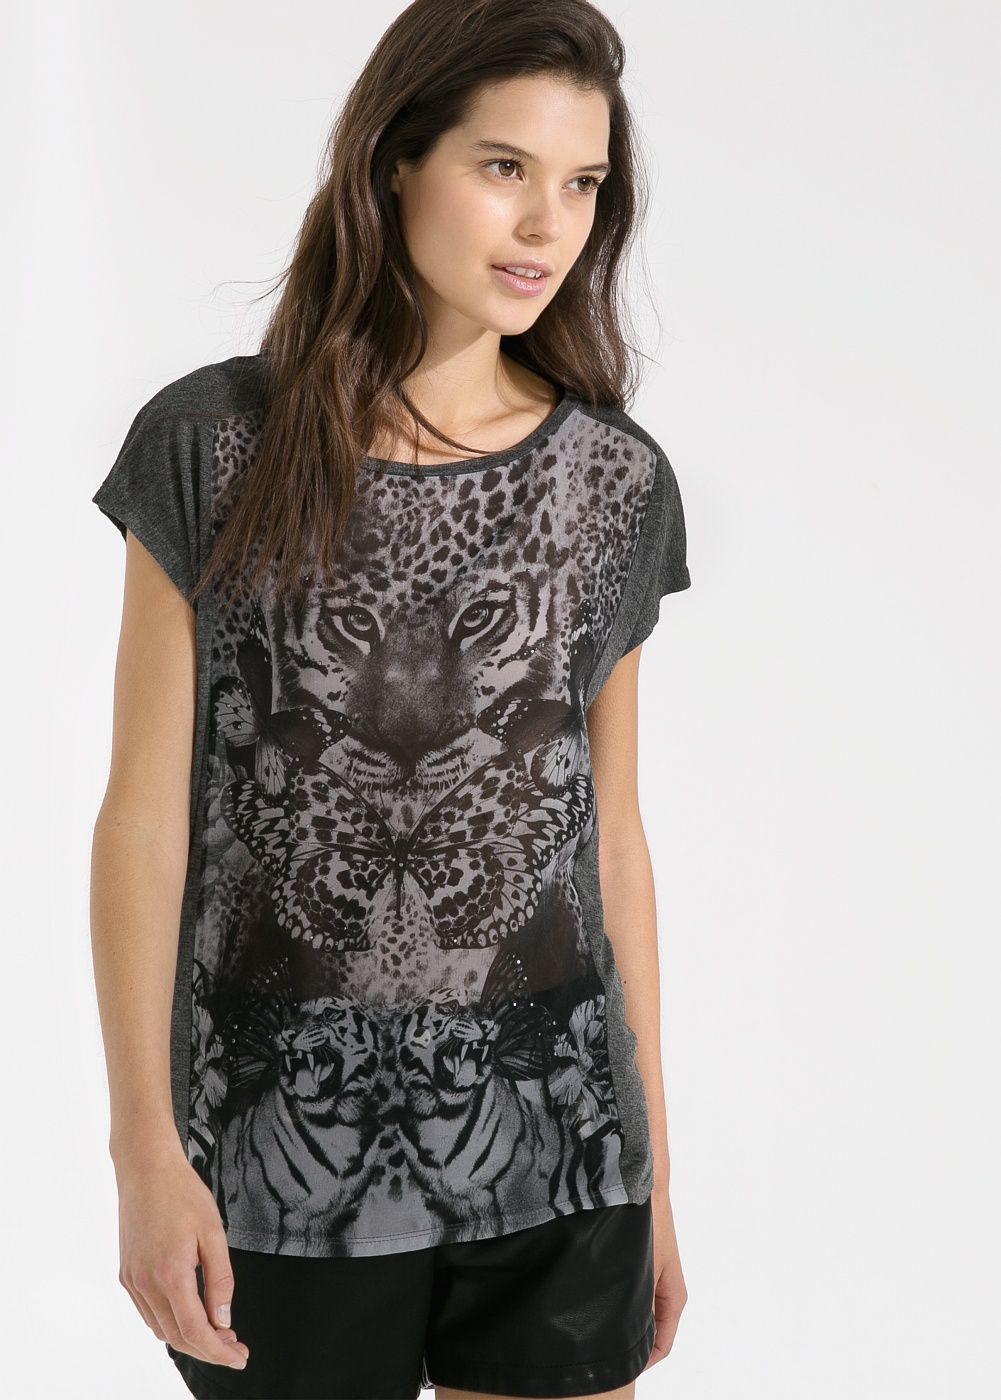 Bead animal t shirt